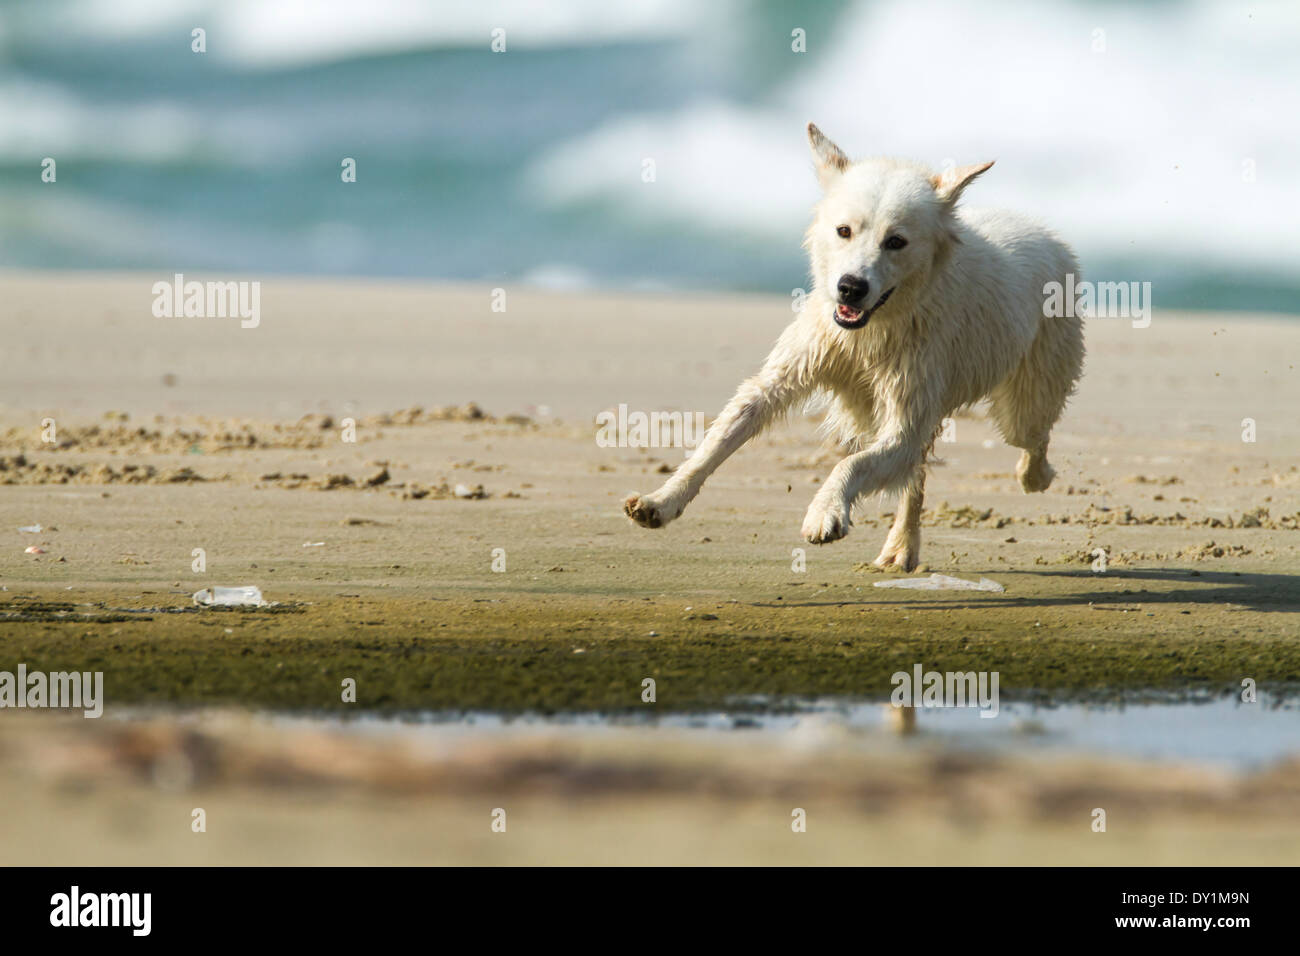 white Dog plays on a beach - Stock Image